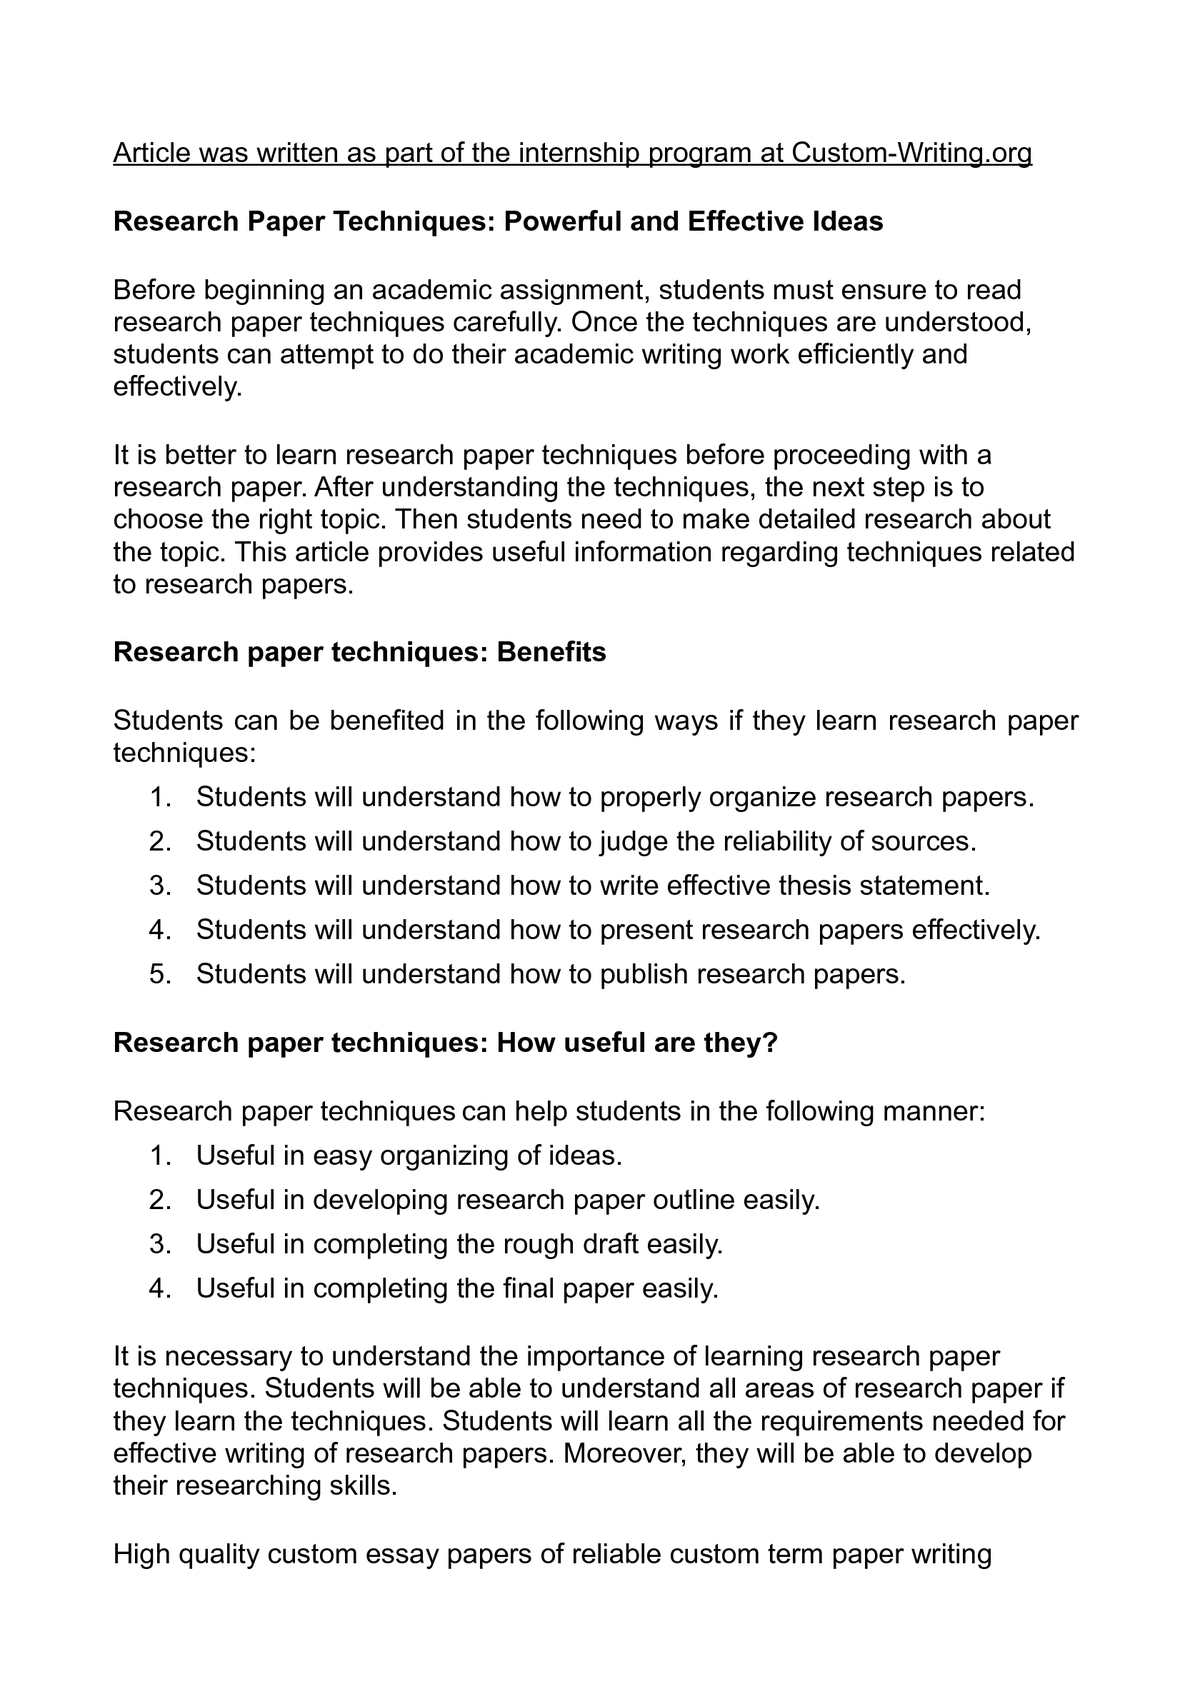 how do research papers help students